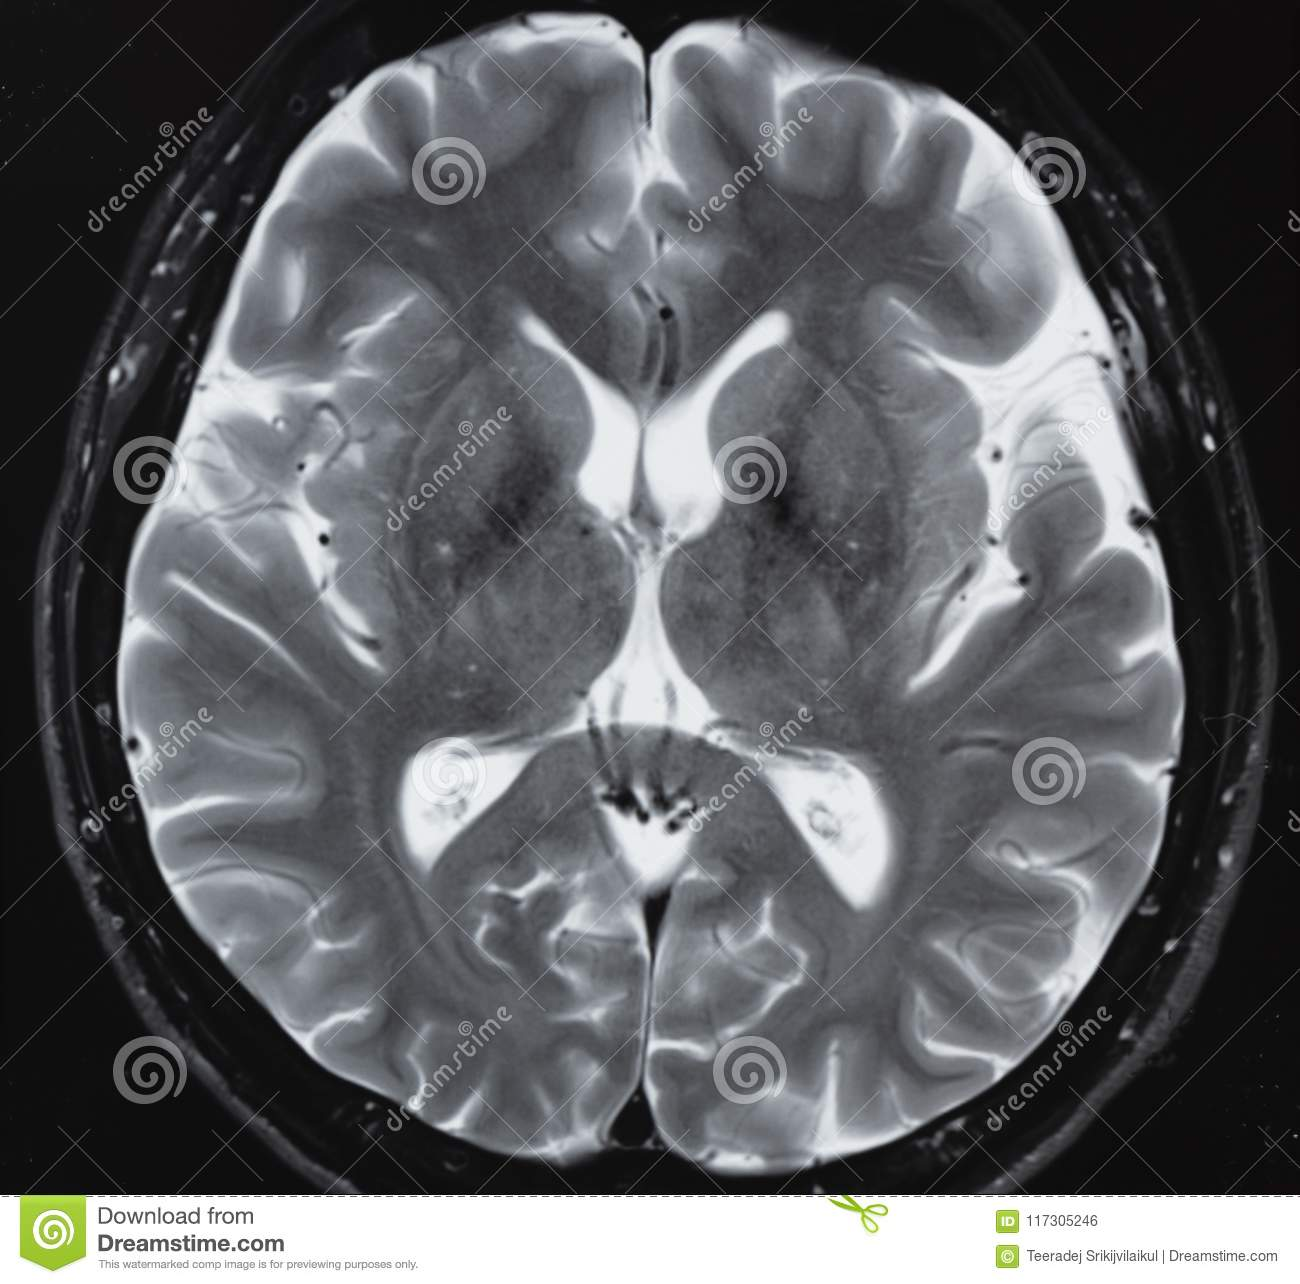 Mri Of Normal Human Brain Anatomy Stock Photo Image Of Body